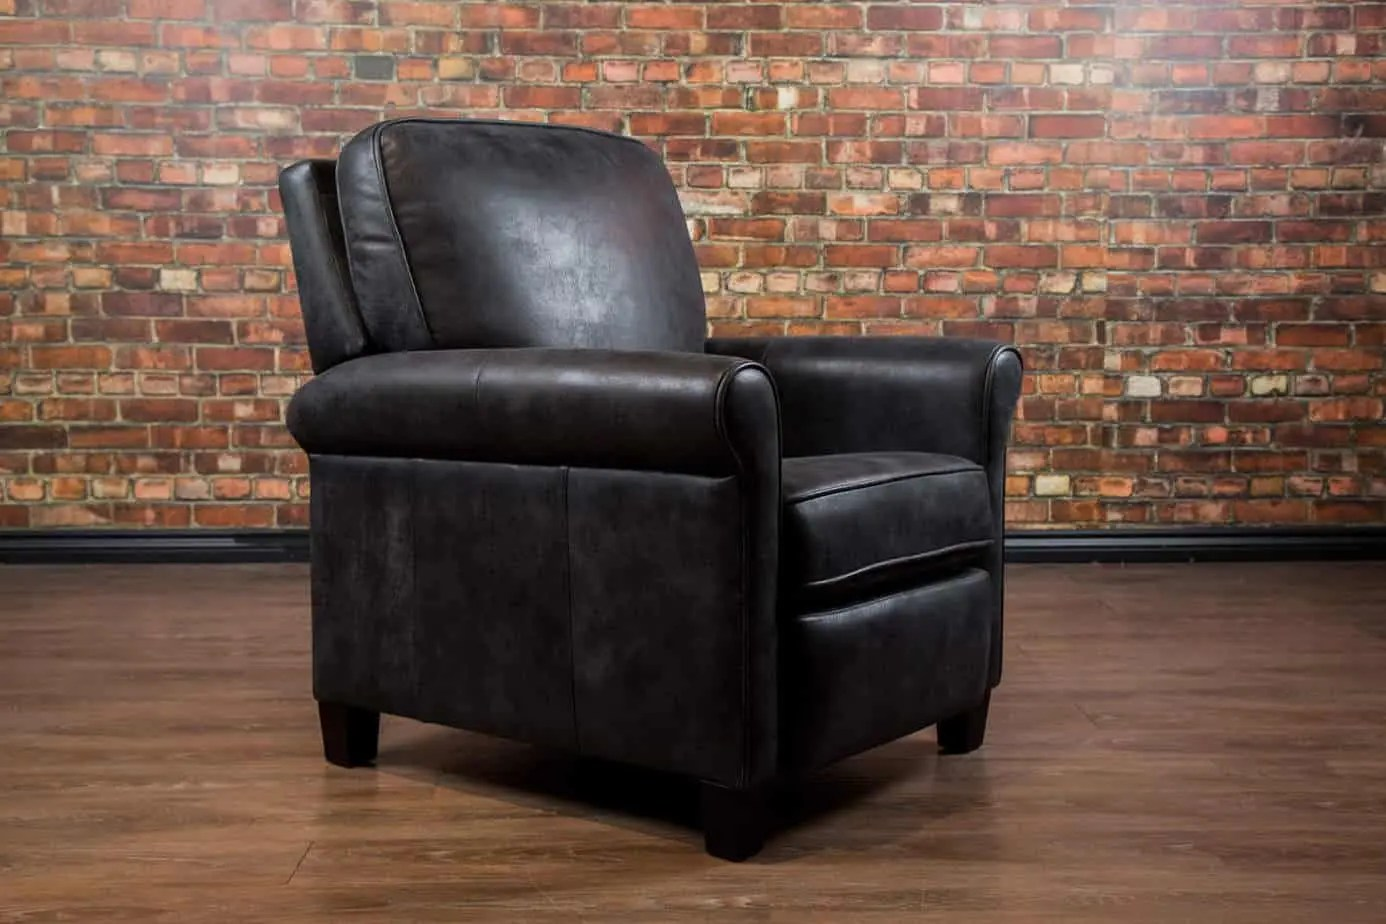 Leather Sofa Chair The Chicago Leather Reclining Chair Collection Canada 39s